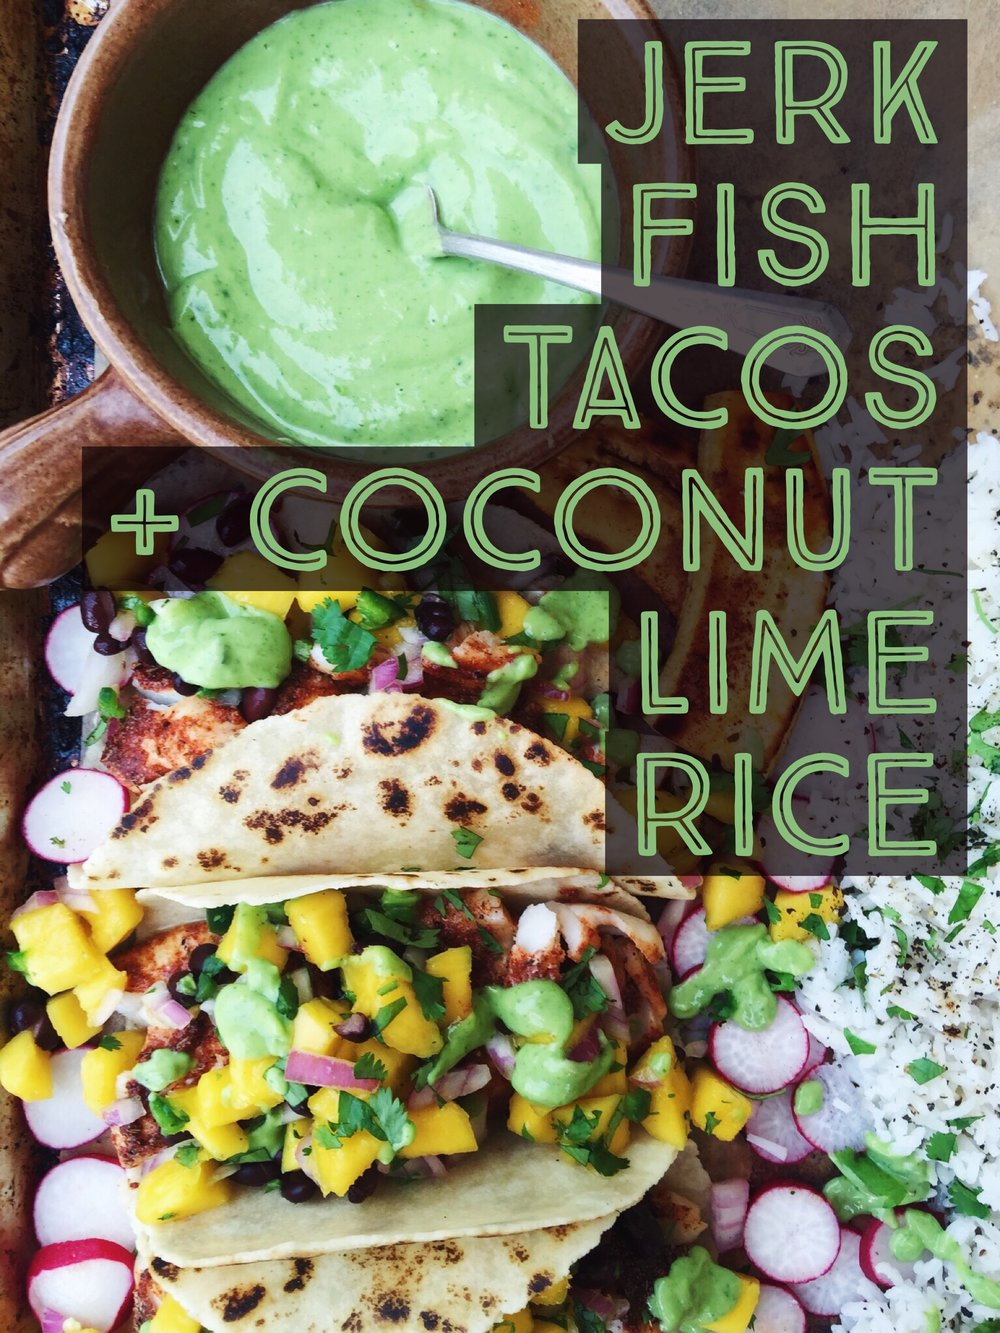 Coconut lime rice.